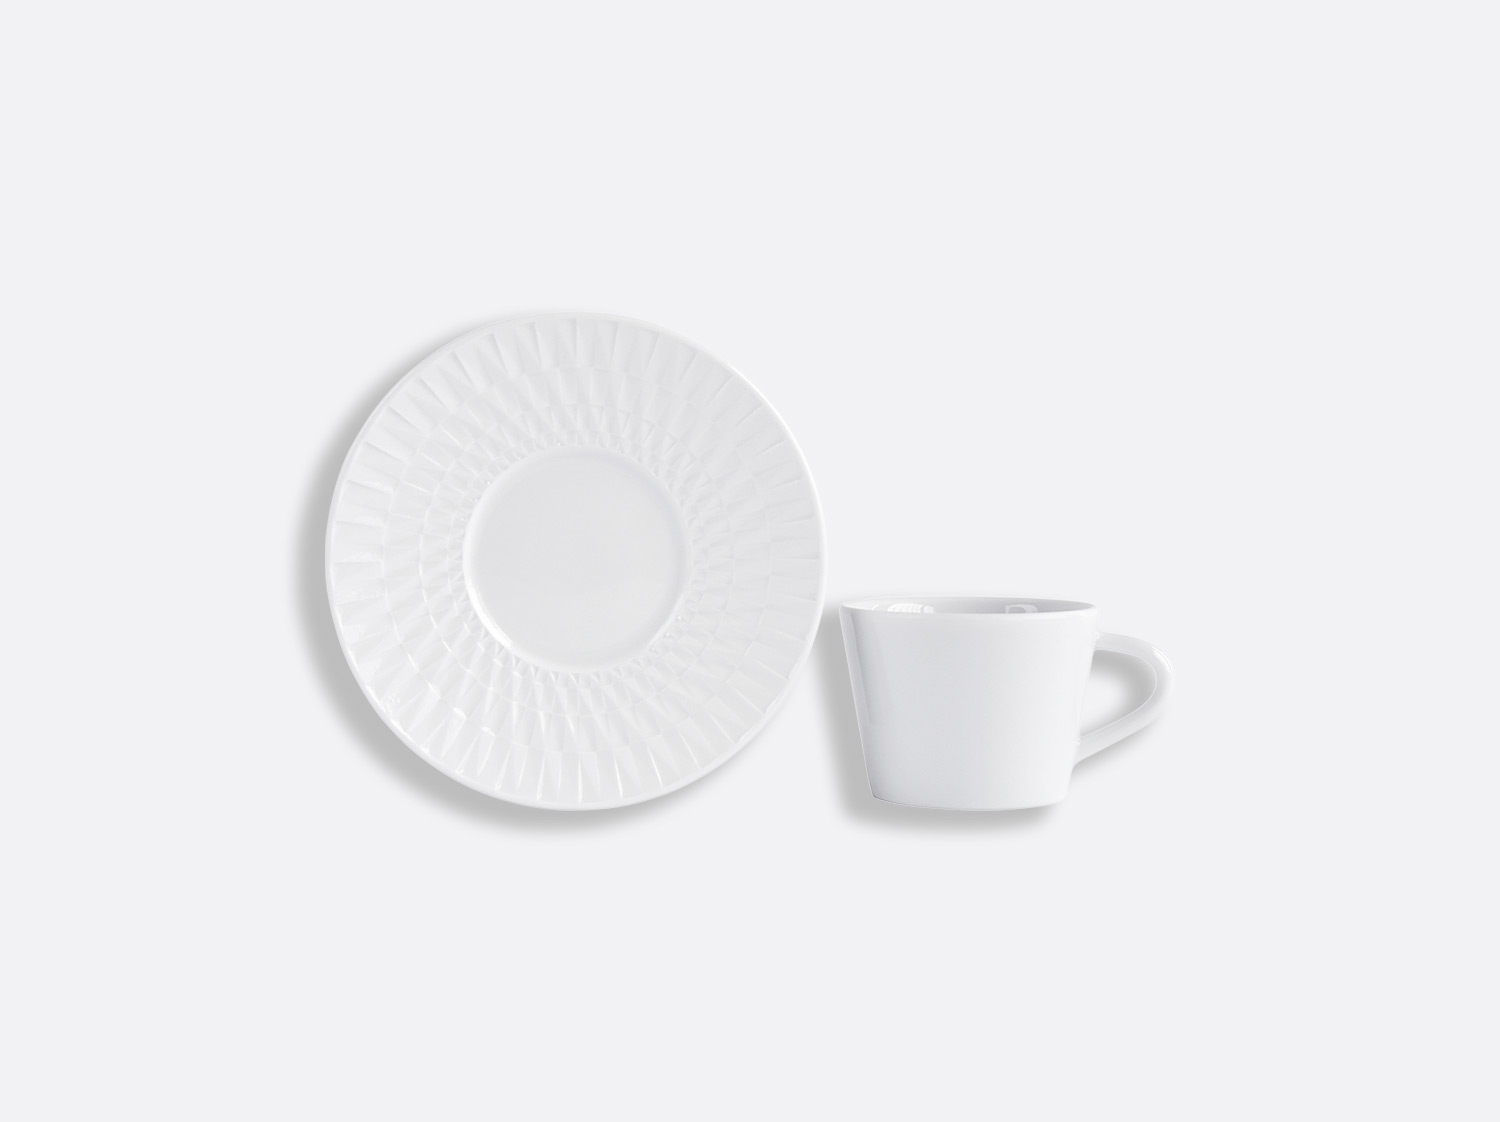 Tasse et soucoupe à café 6 cl en porcelaine de la collection Twist Bernardaud